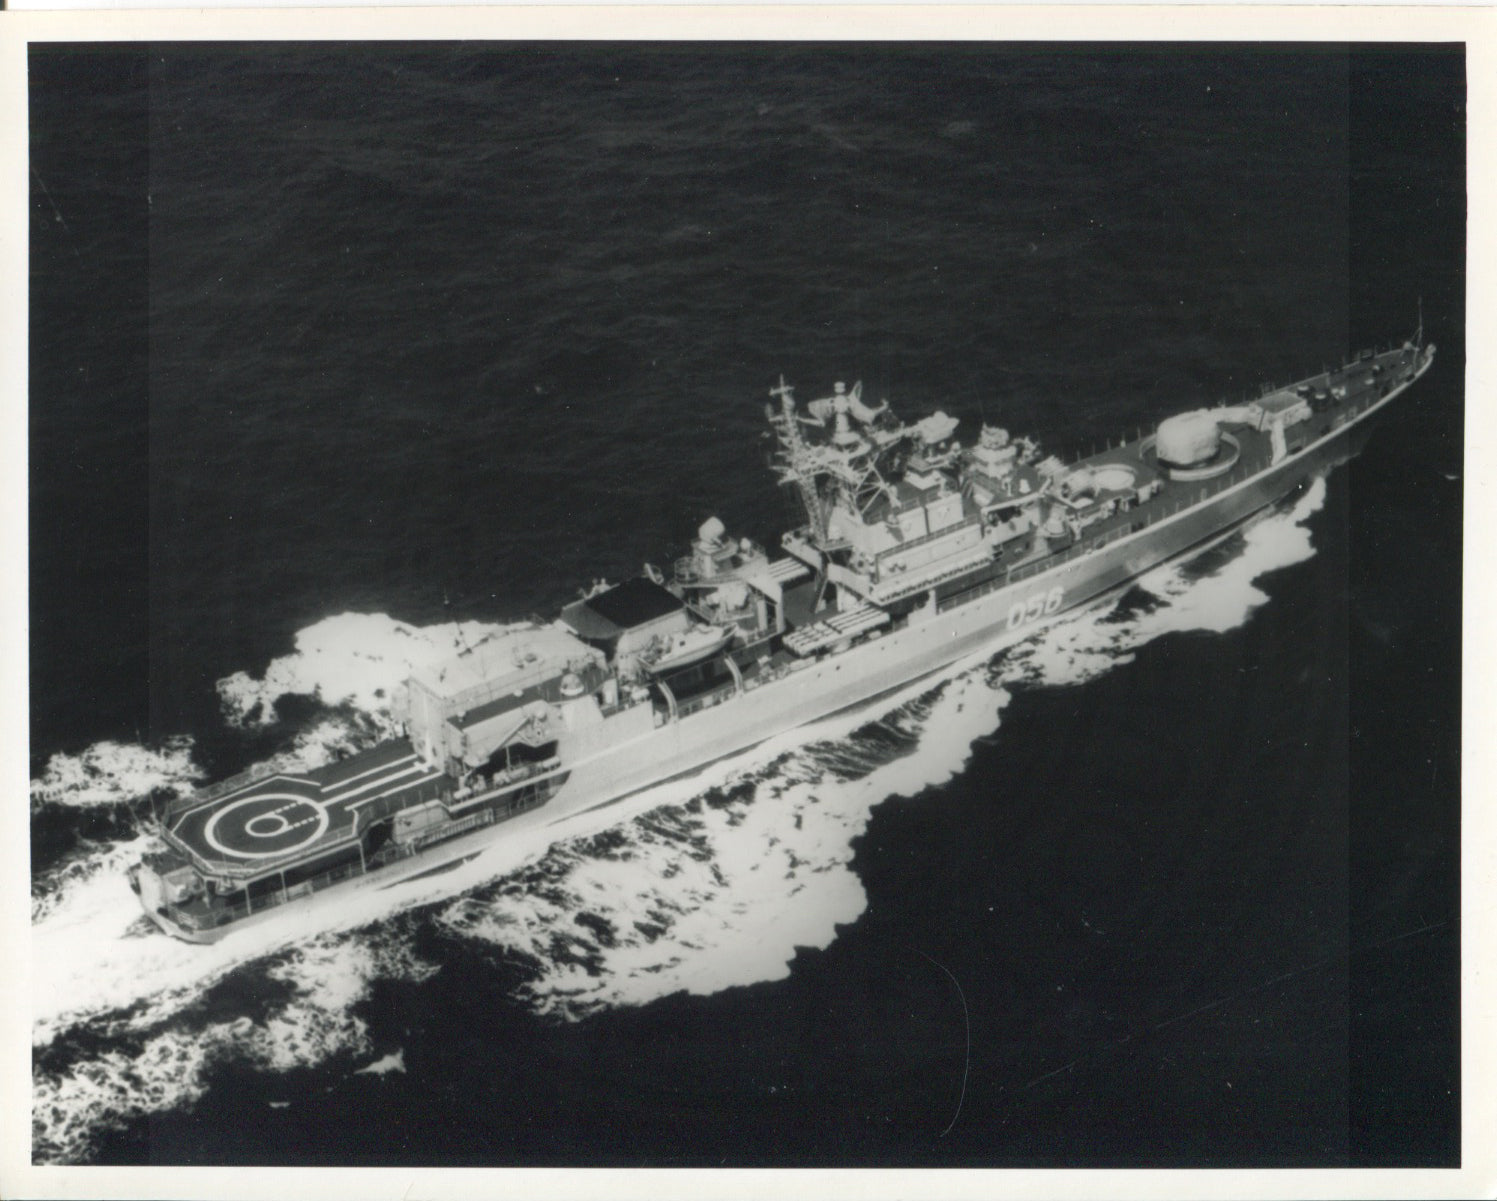 Official U.S. Navy photo of Soviet Krivak III class frigate Menzhinskiy - Annapolis Maritime Antiques